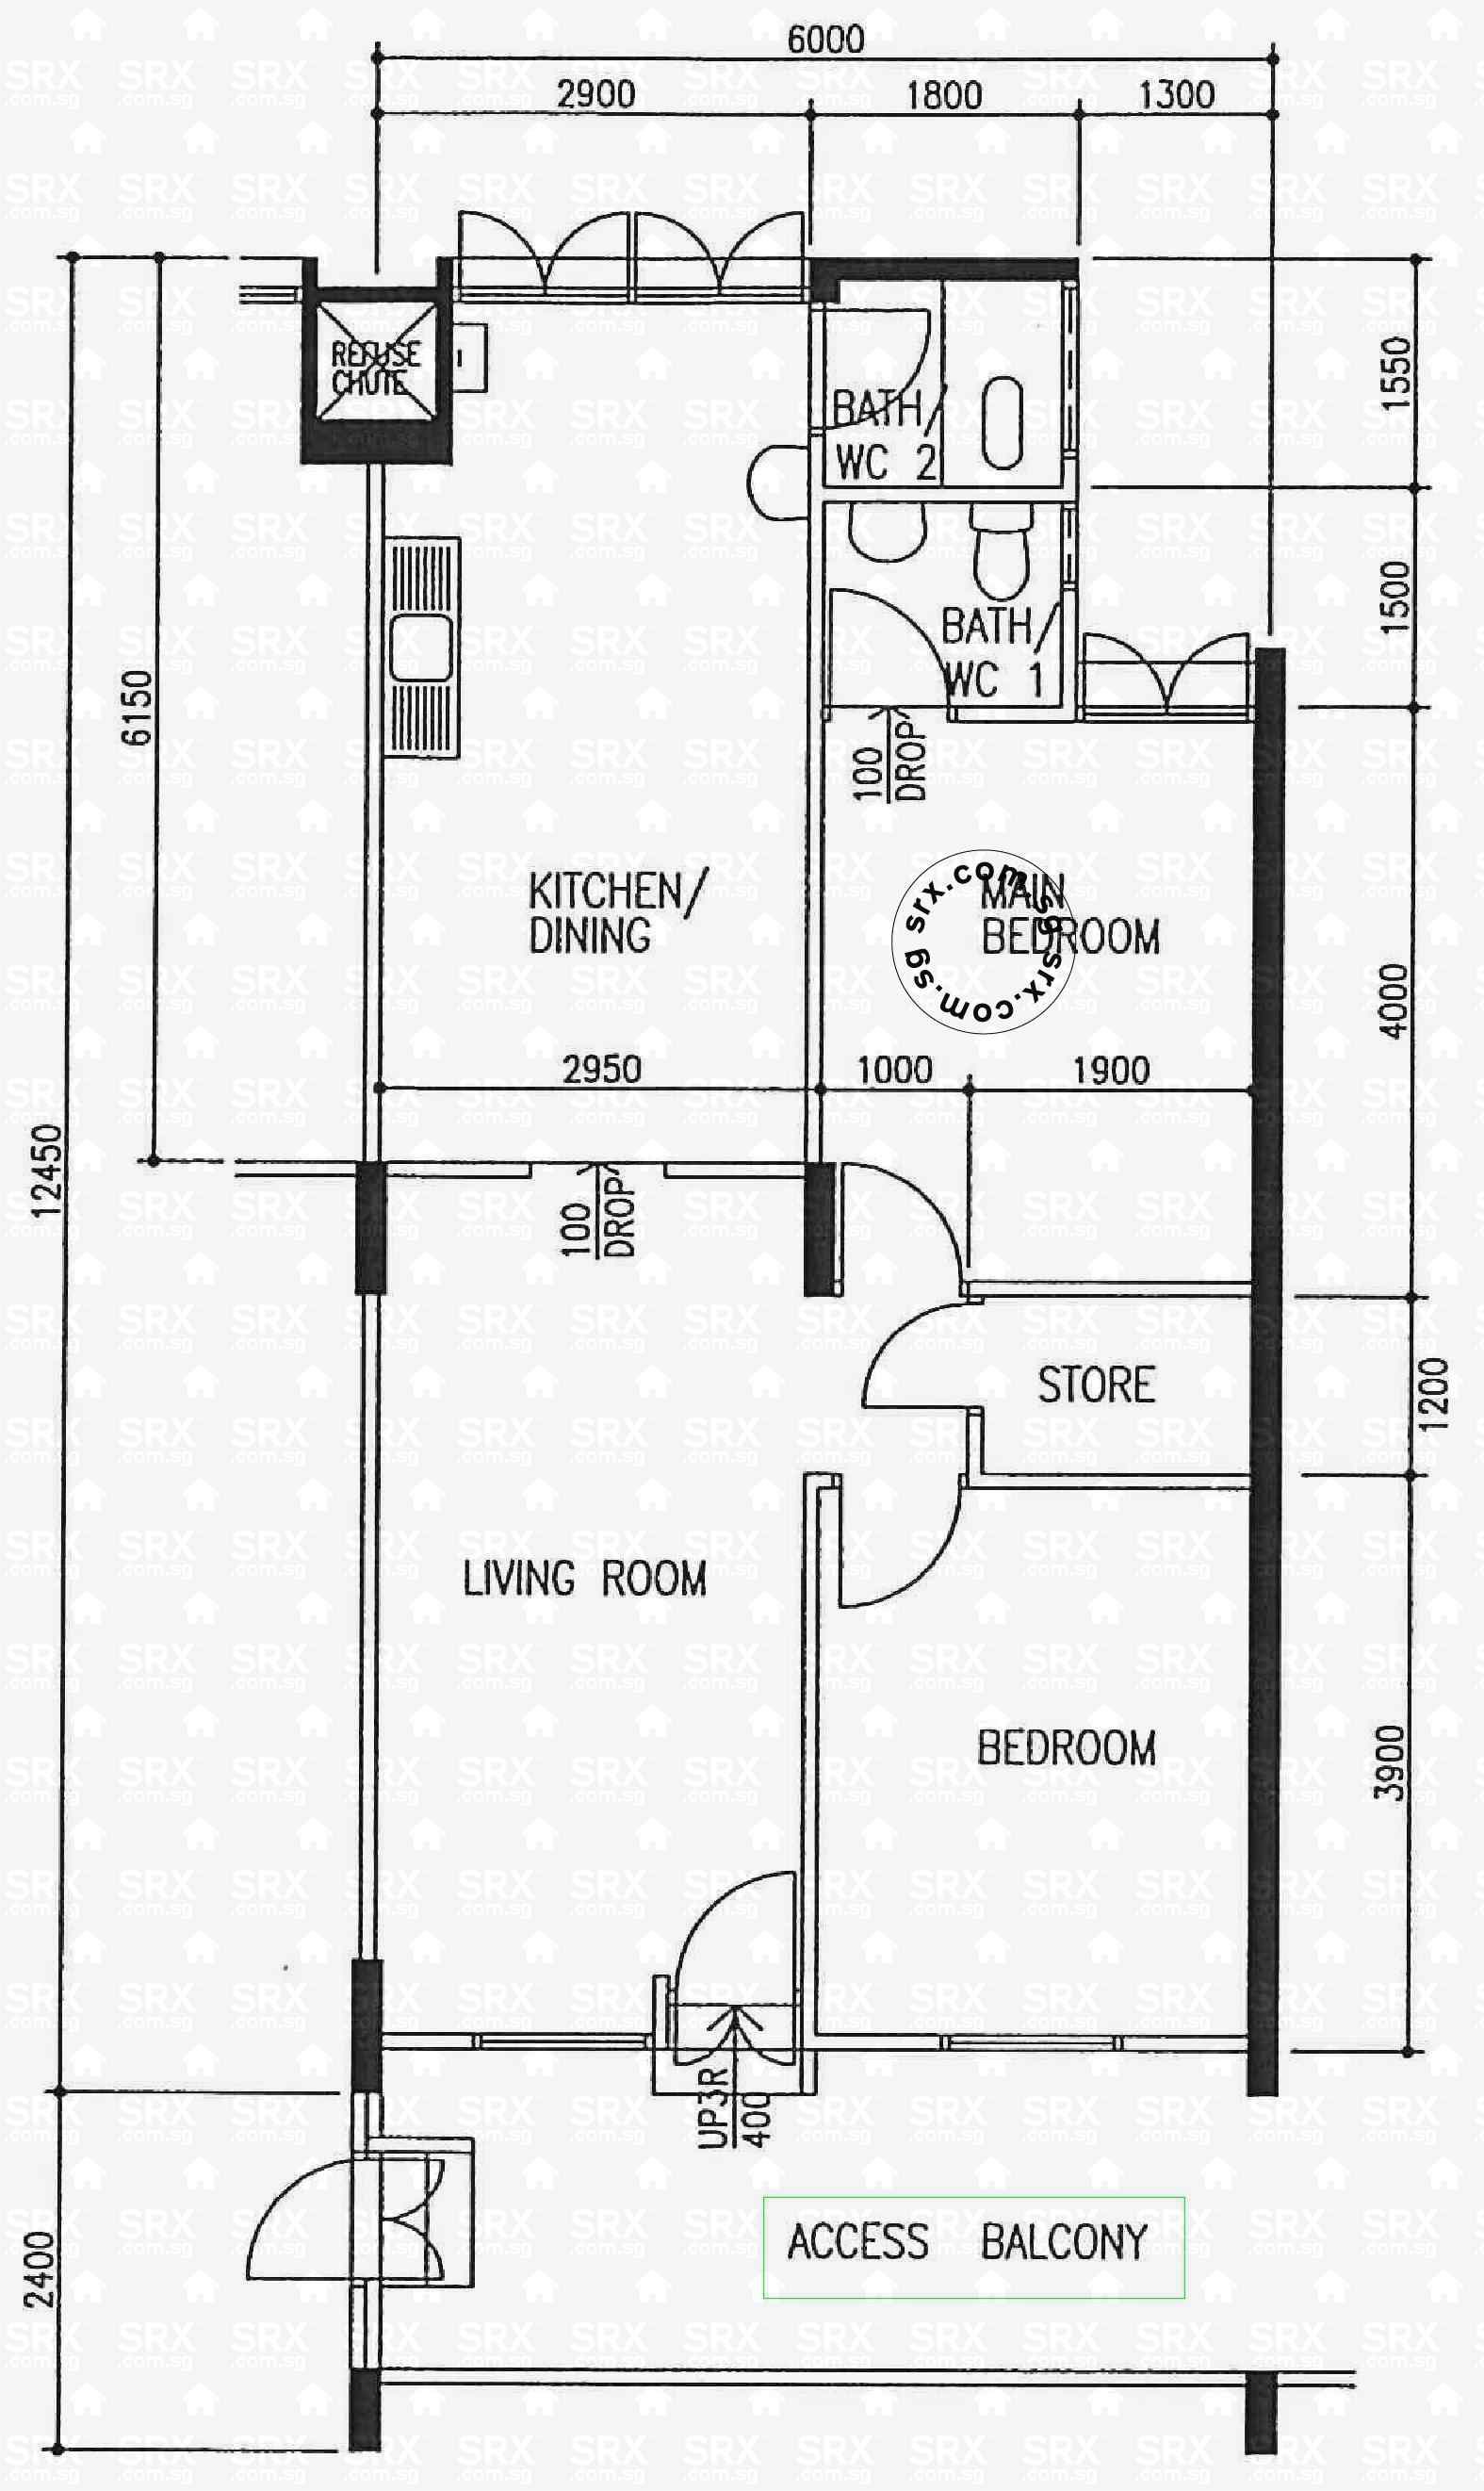 Floor plans for teck whye lane hdb details srx property for 16 brookers lane floor plans